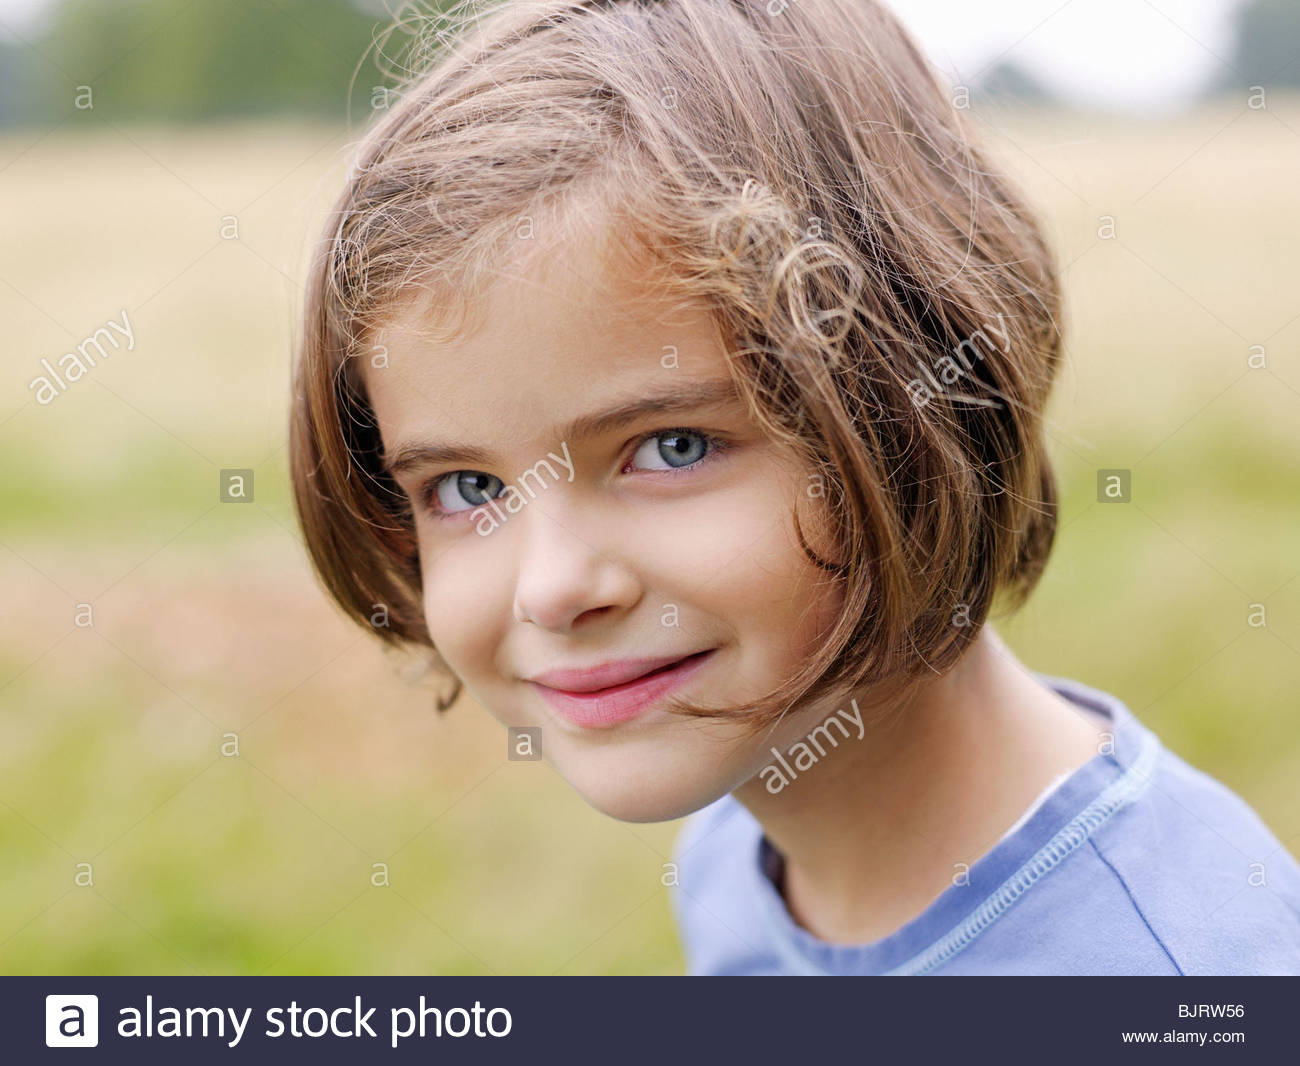 Cute girl - Stock Image